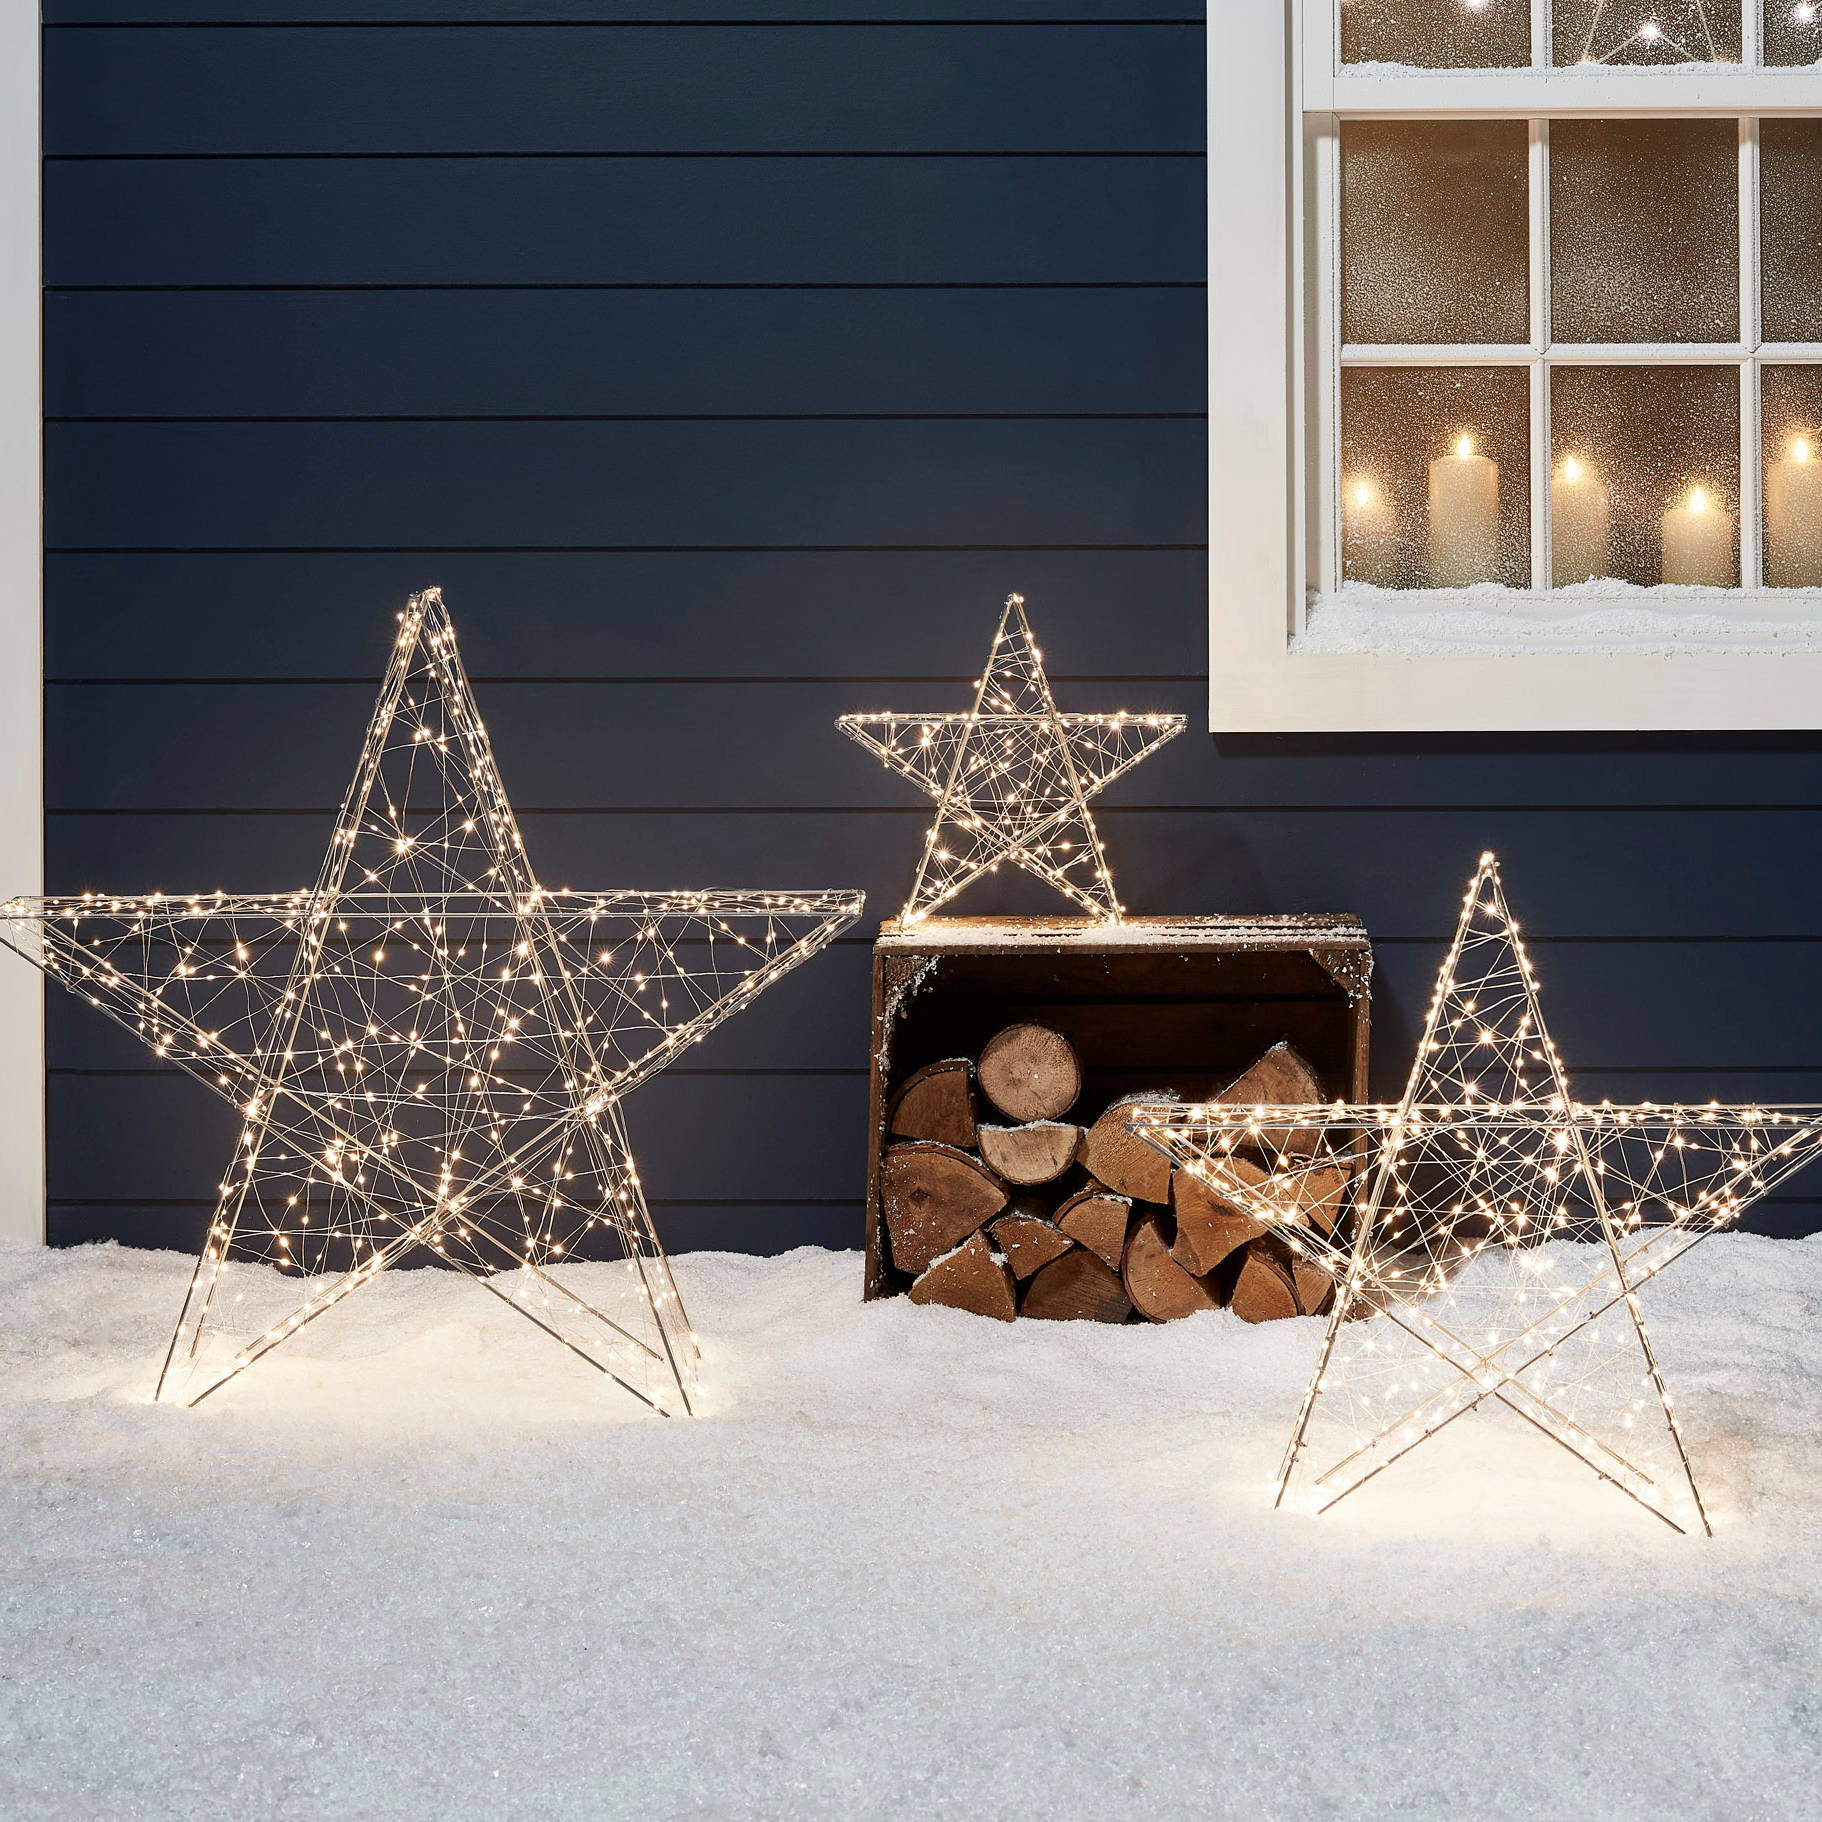 Warm White Star Decorations stood outside a home